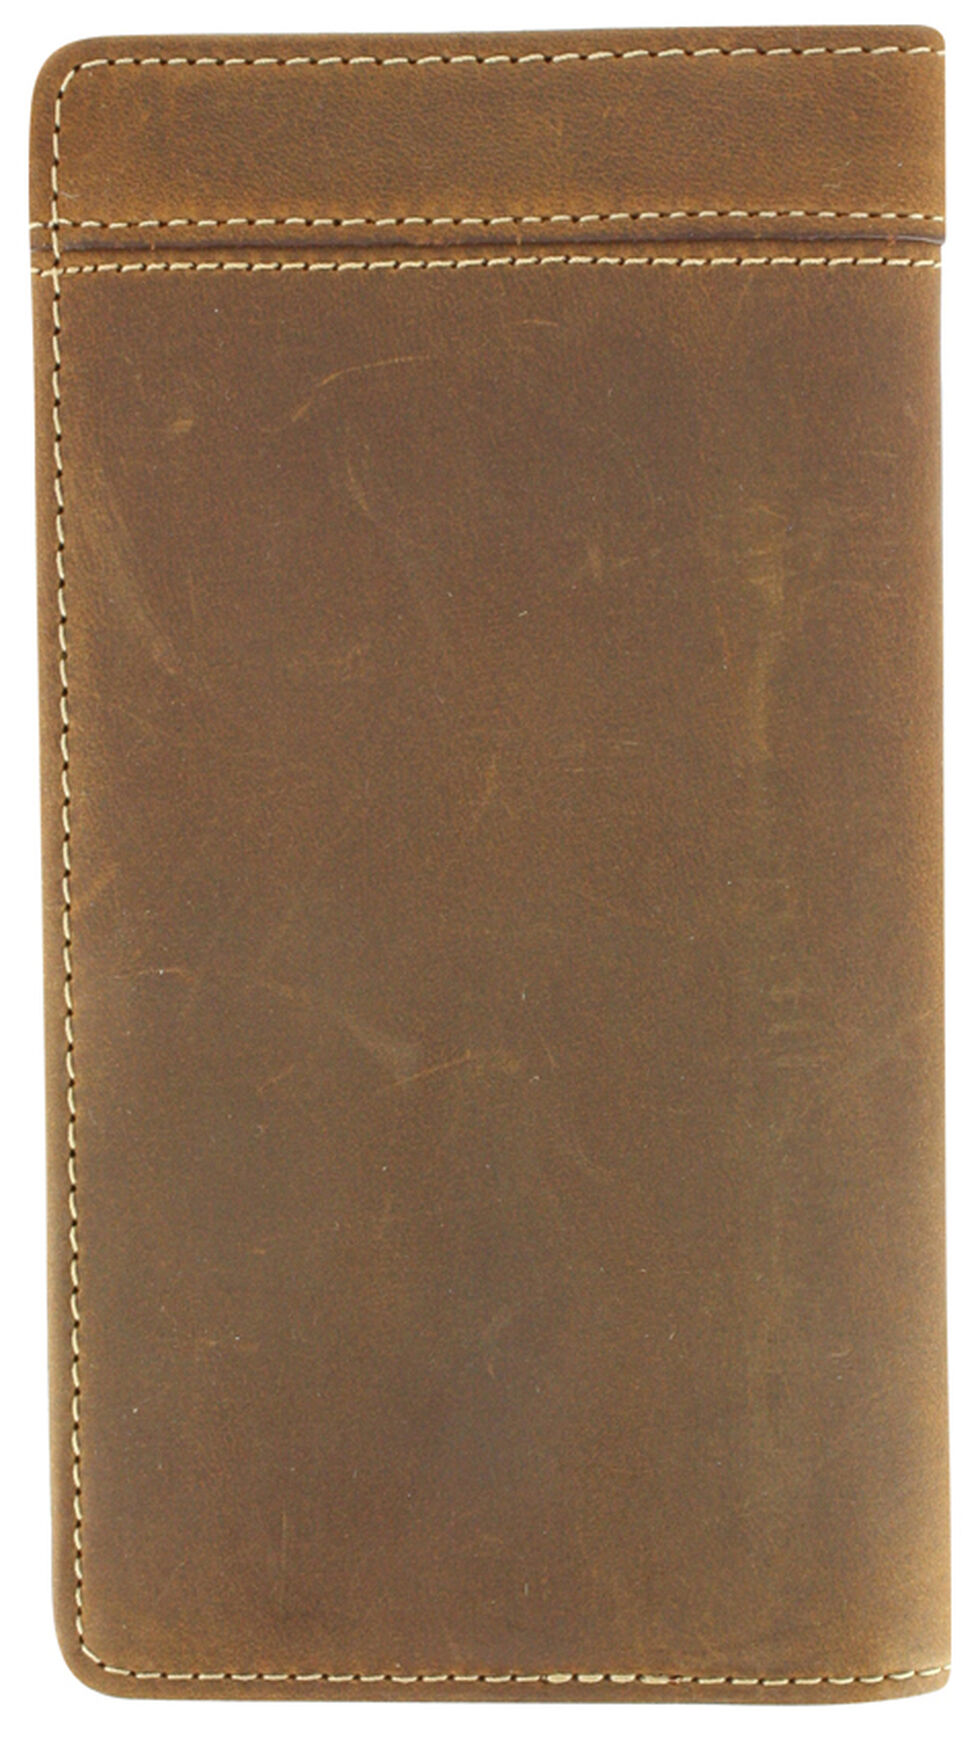 Cody James Men's Wallet and Checkbook Cover, Brown, hi-res